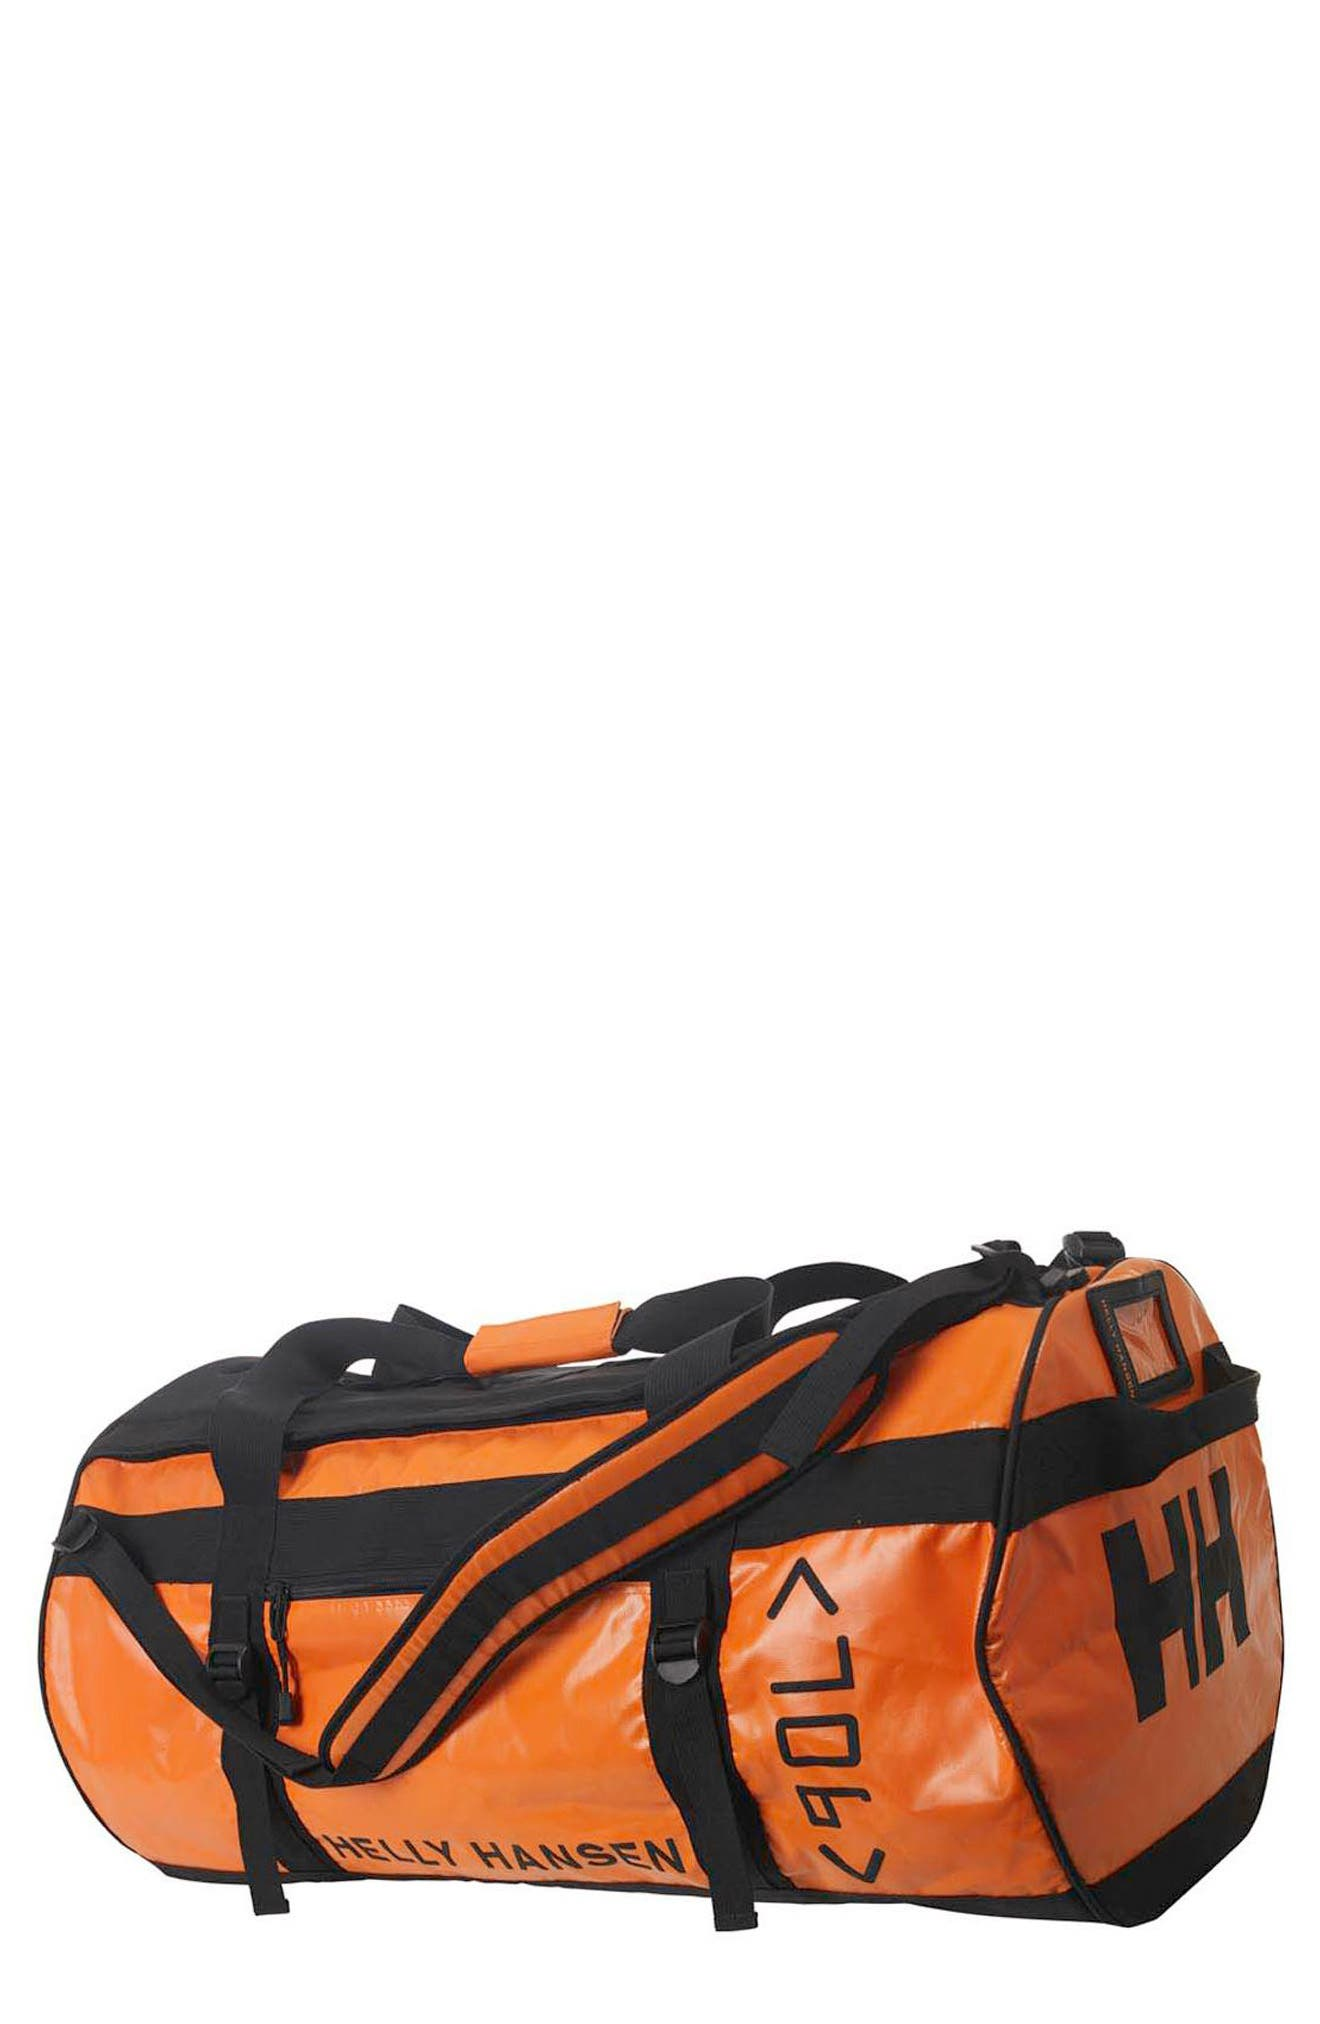 Classic 90-Liter Duffel Bag,                             Main thumbnail 1, color,                             Spray Orange